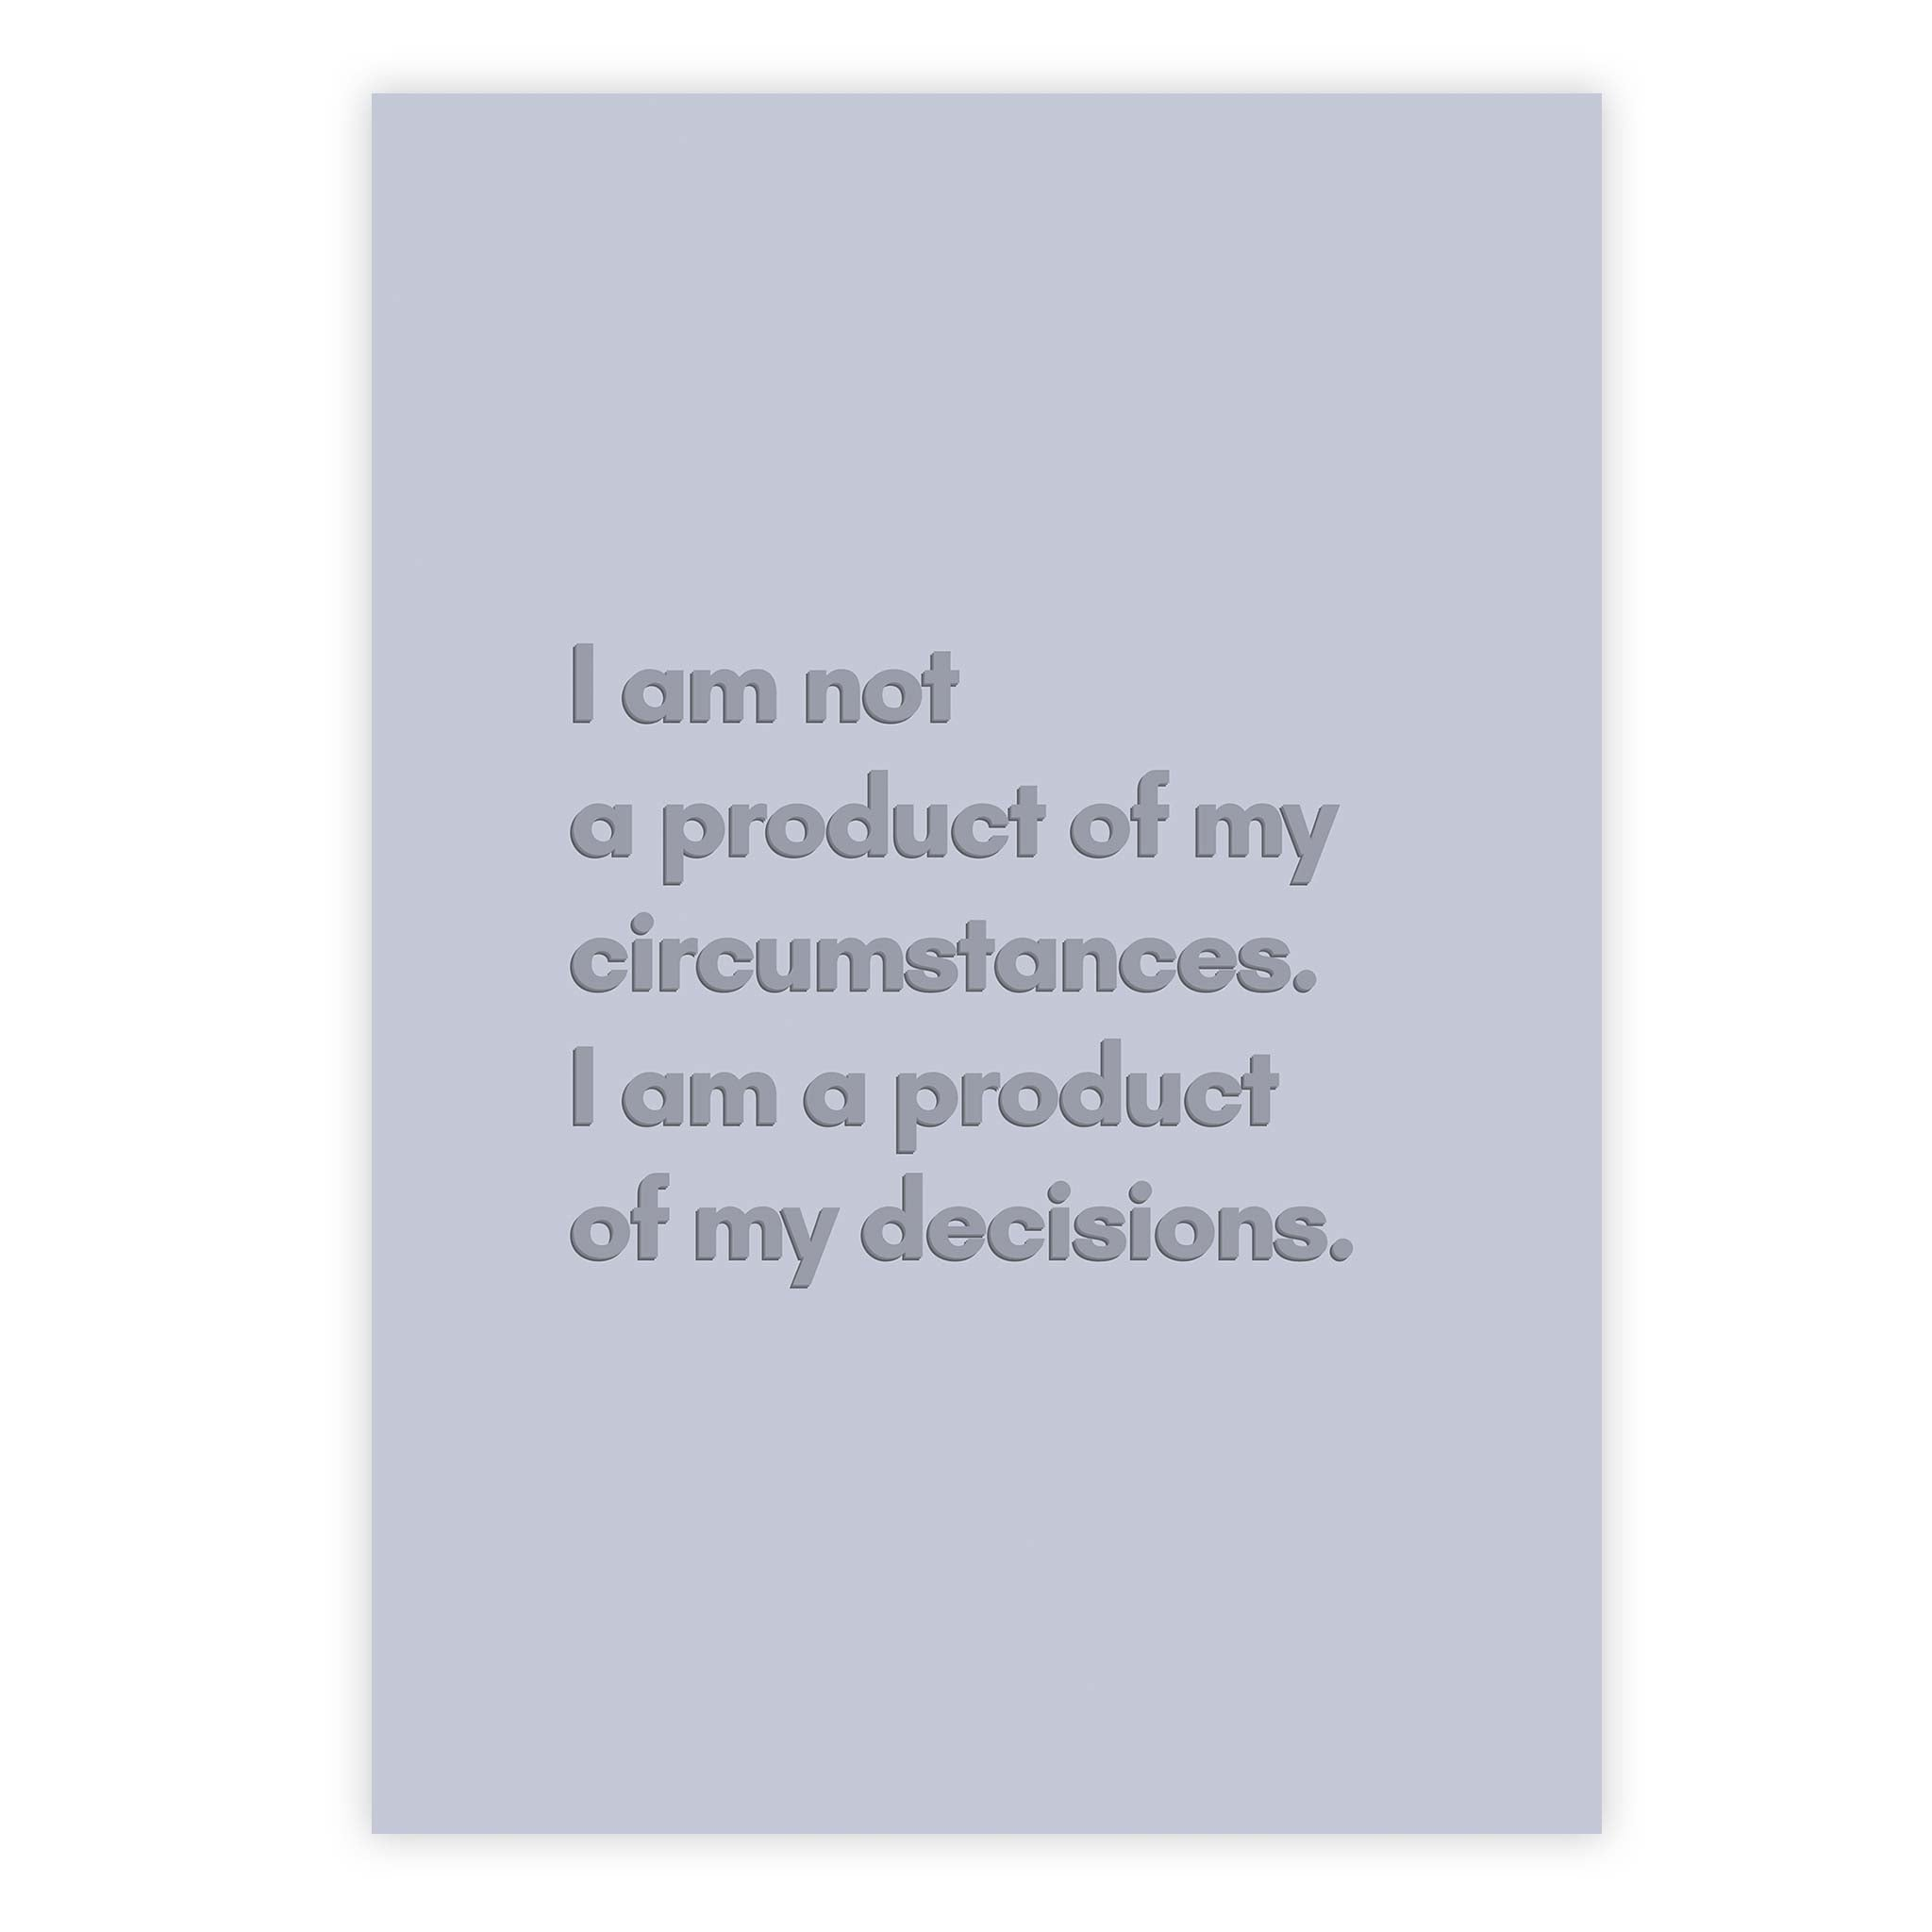 I am not a product of my circumstances. I am a product of my decisions